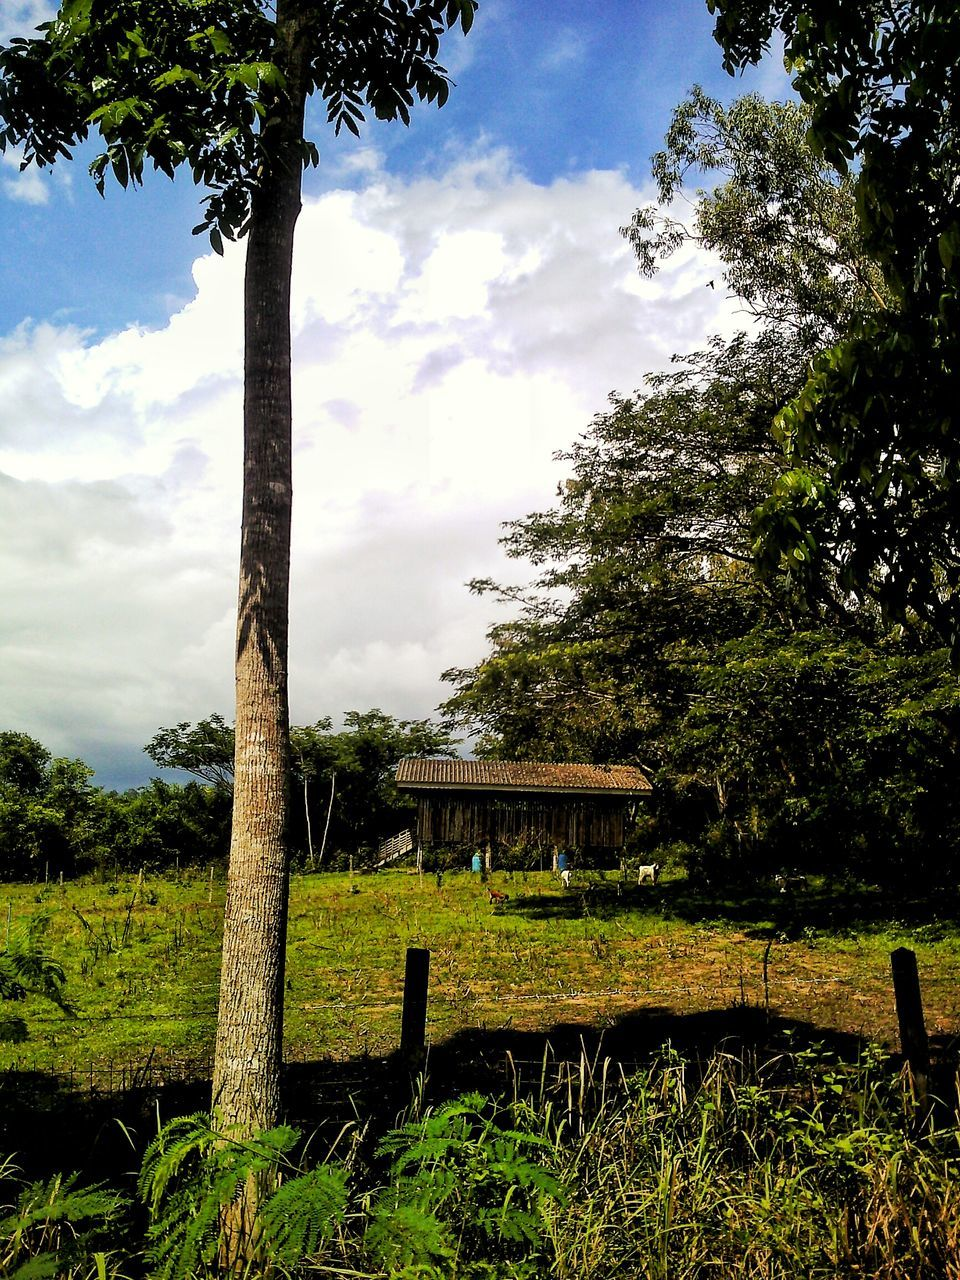 tree, sky, cloud - sky, growth, nature, day, outdoors, built structure, tranquility, no people, beauty in nature, architecture, scenics, landscape, tree trunk, tranquil scene, branch, green color, grass